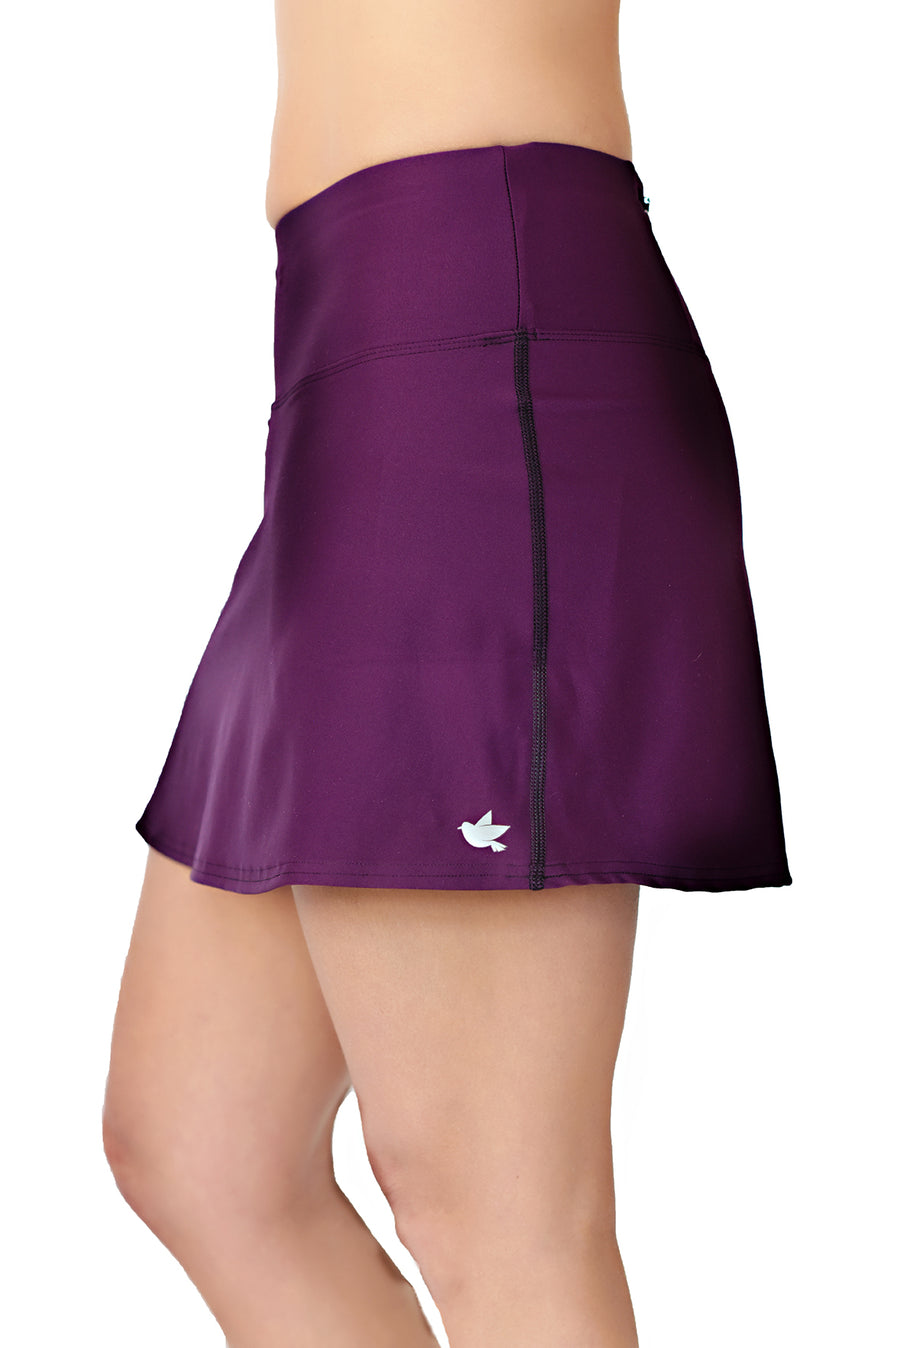 running skirt plum